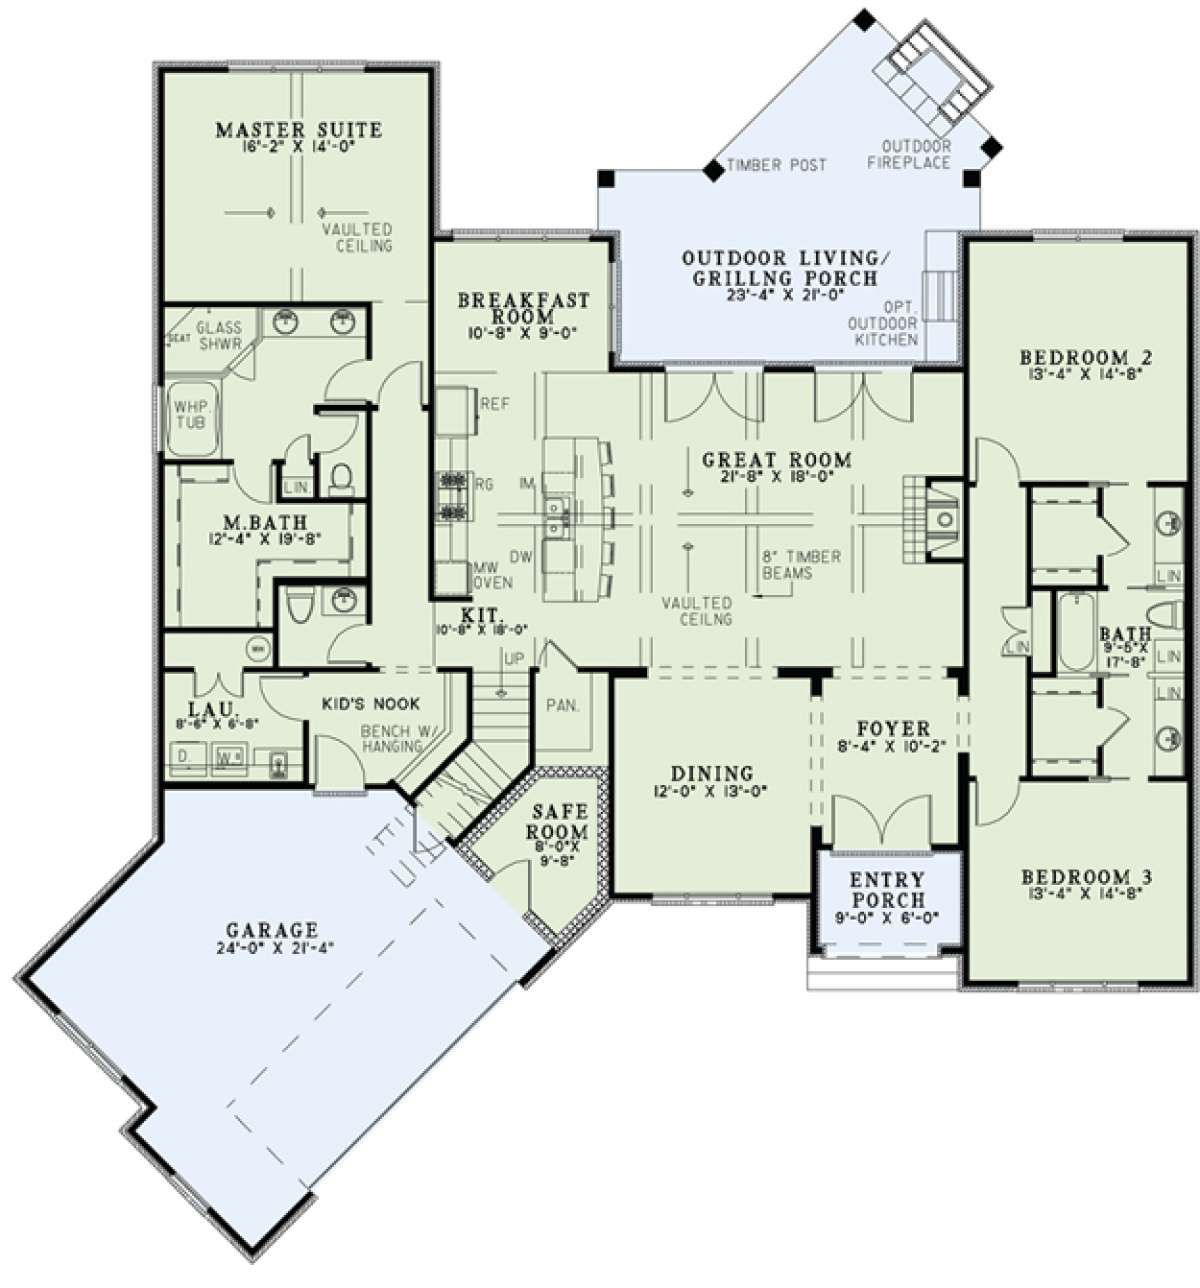 House Plan 110 00999 European Plan 2 408 Square Feet 3 Bedrooms 2 5 Bathrooms Courtyard House Plans House Plans Bedroom Floor Plans